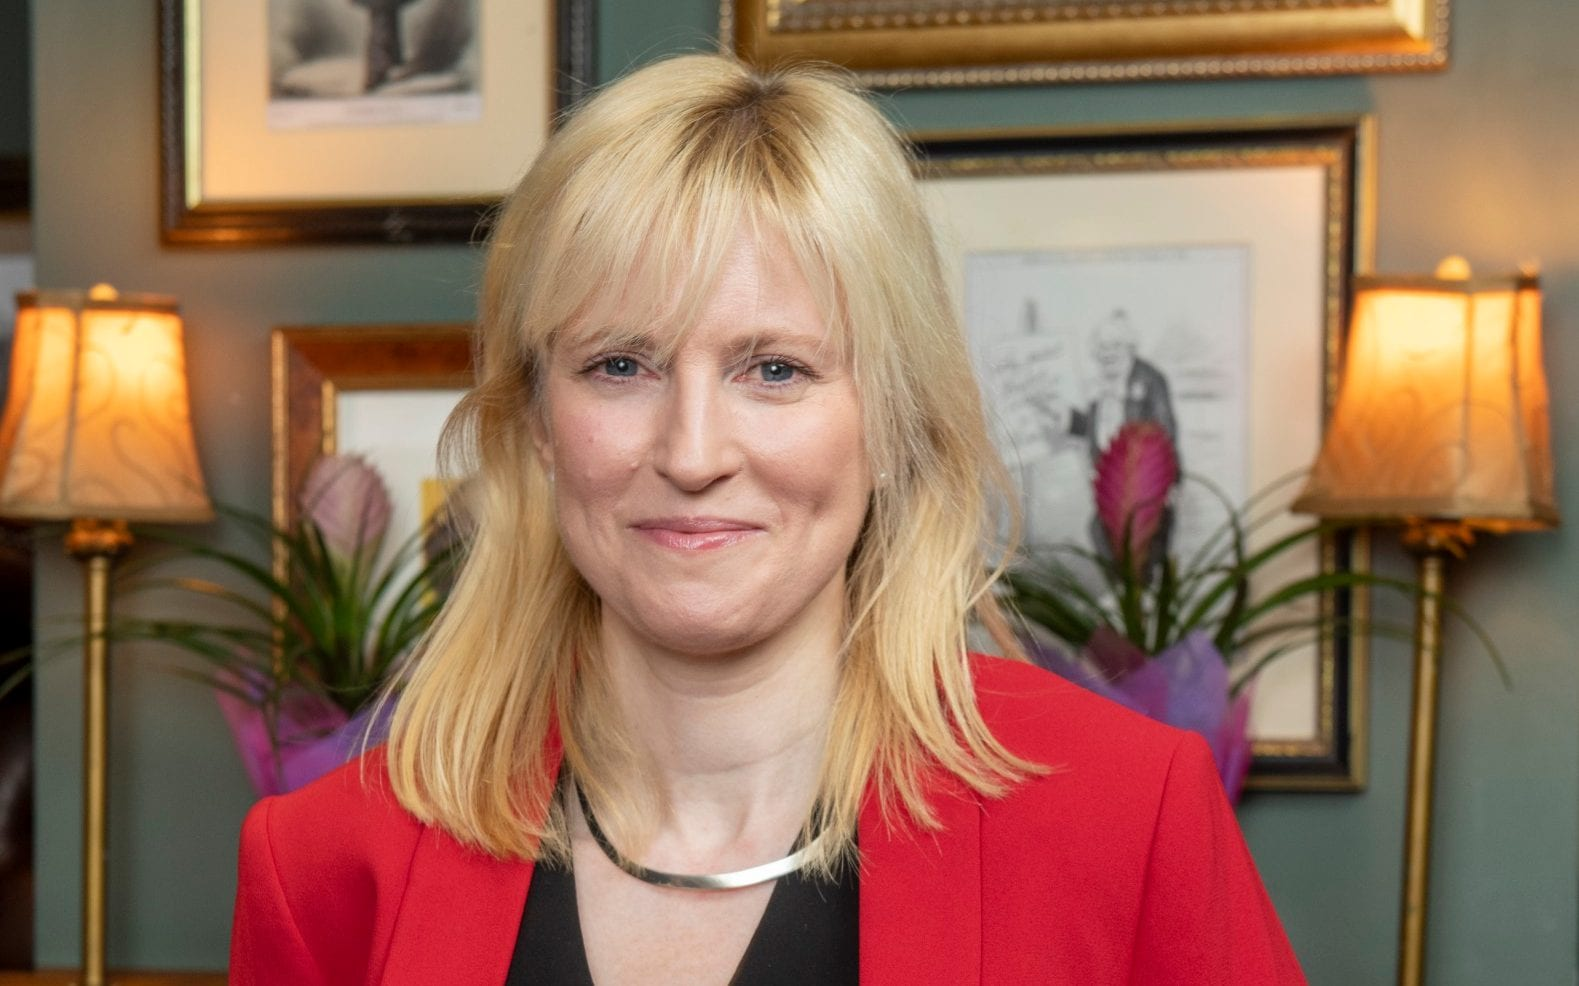 Labour whip resigns after breaking lockdown rules to meet married boyfriend